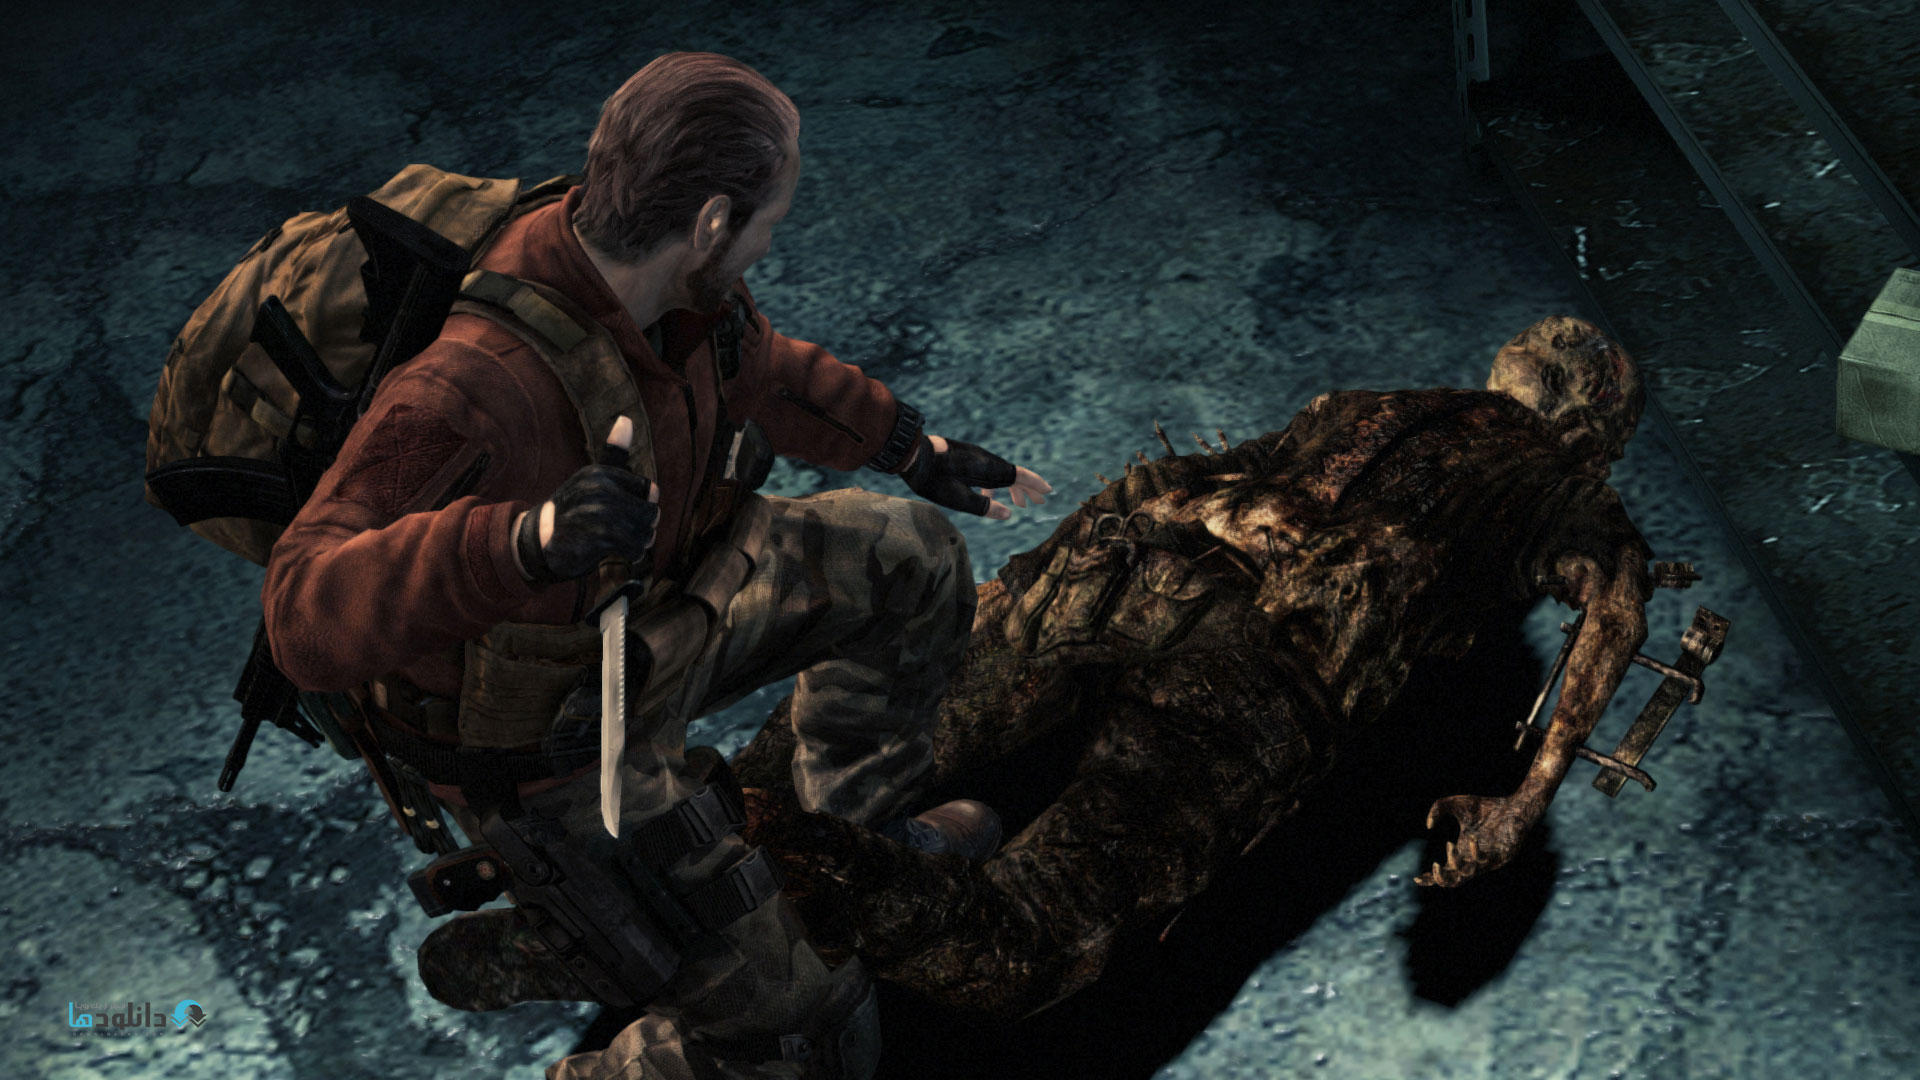 http://img5.downloadha.com/hosein/Game/February%202015/25/Resident-Evil-Revelations-2-Episode-1-screenshots-02-large.jpg